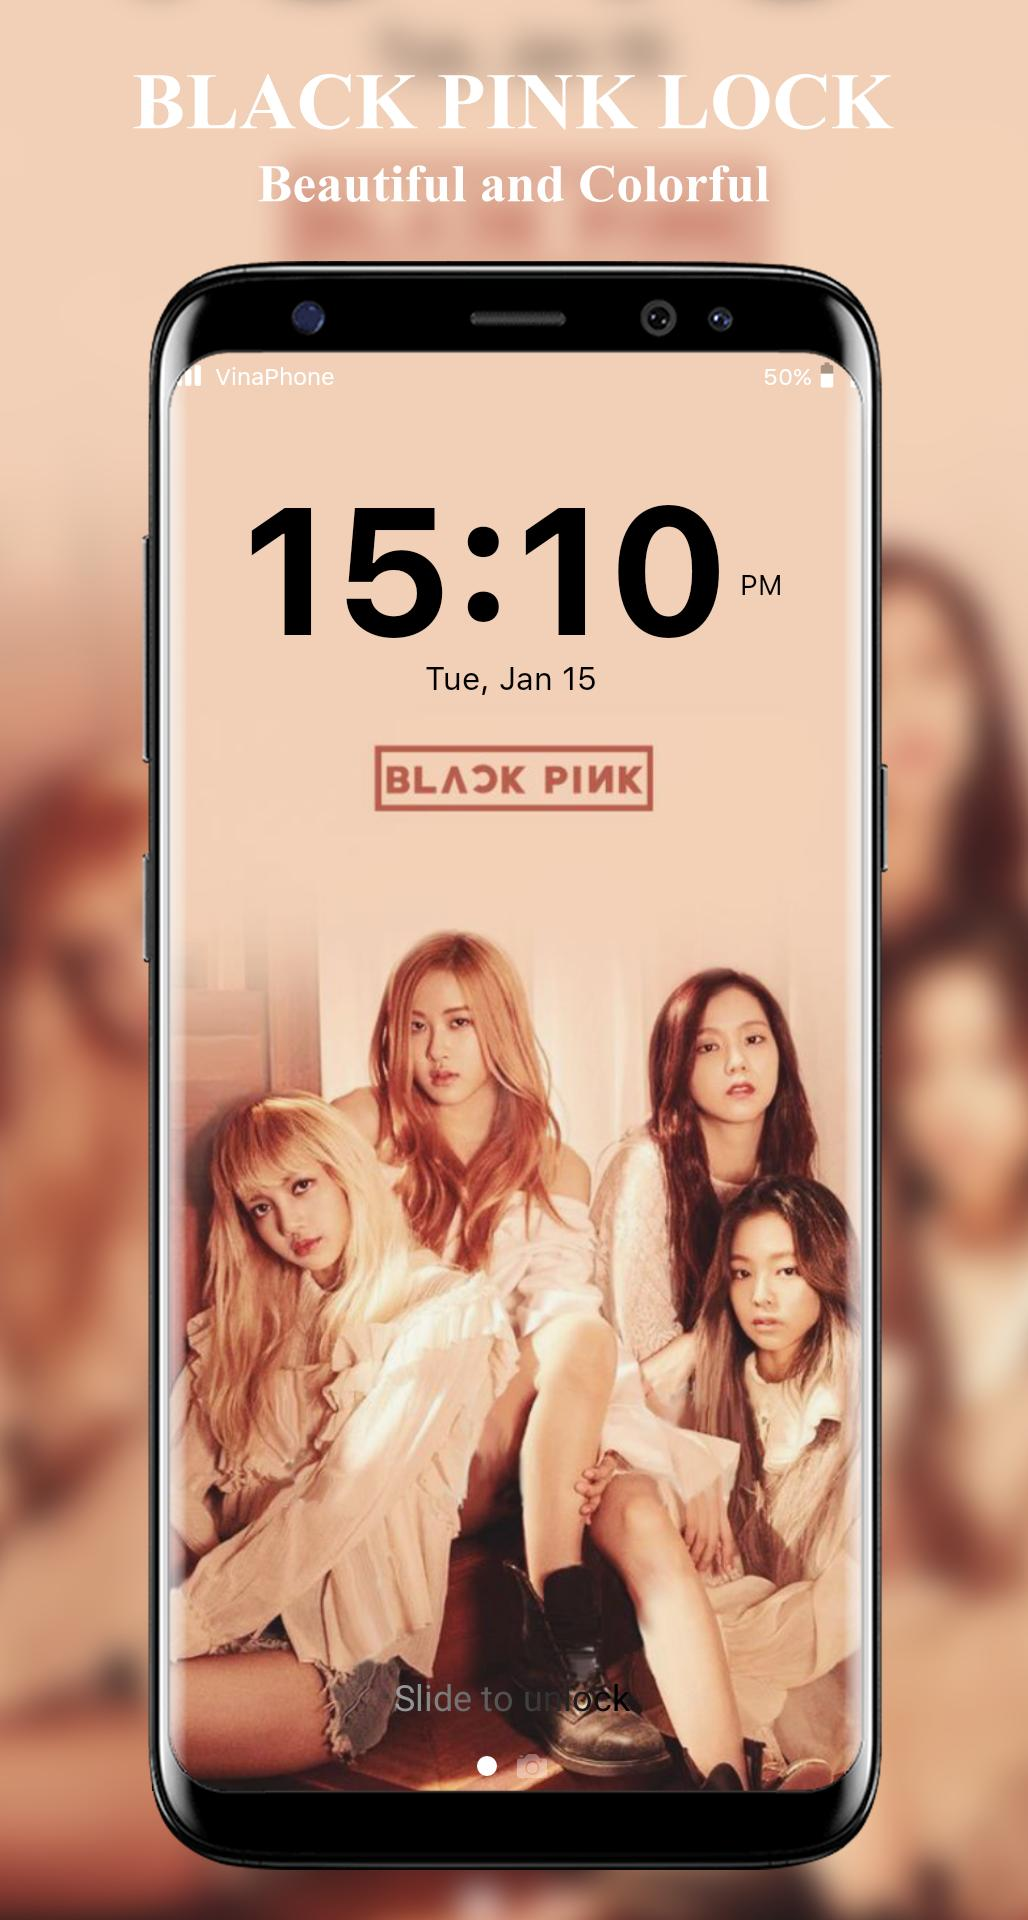 Blackpink Pattern Lock Screen Blackpink Wallpaper For